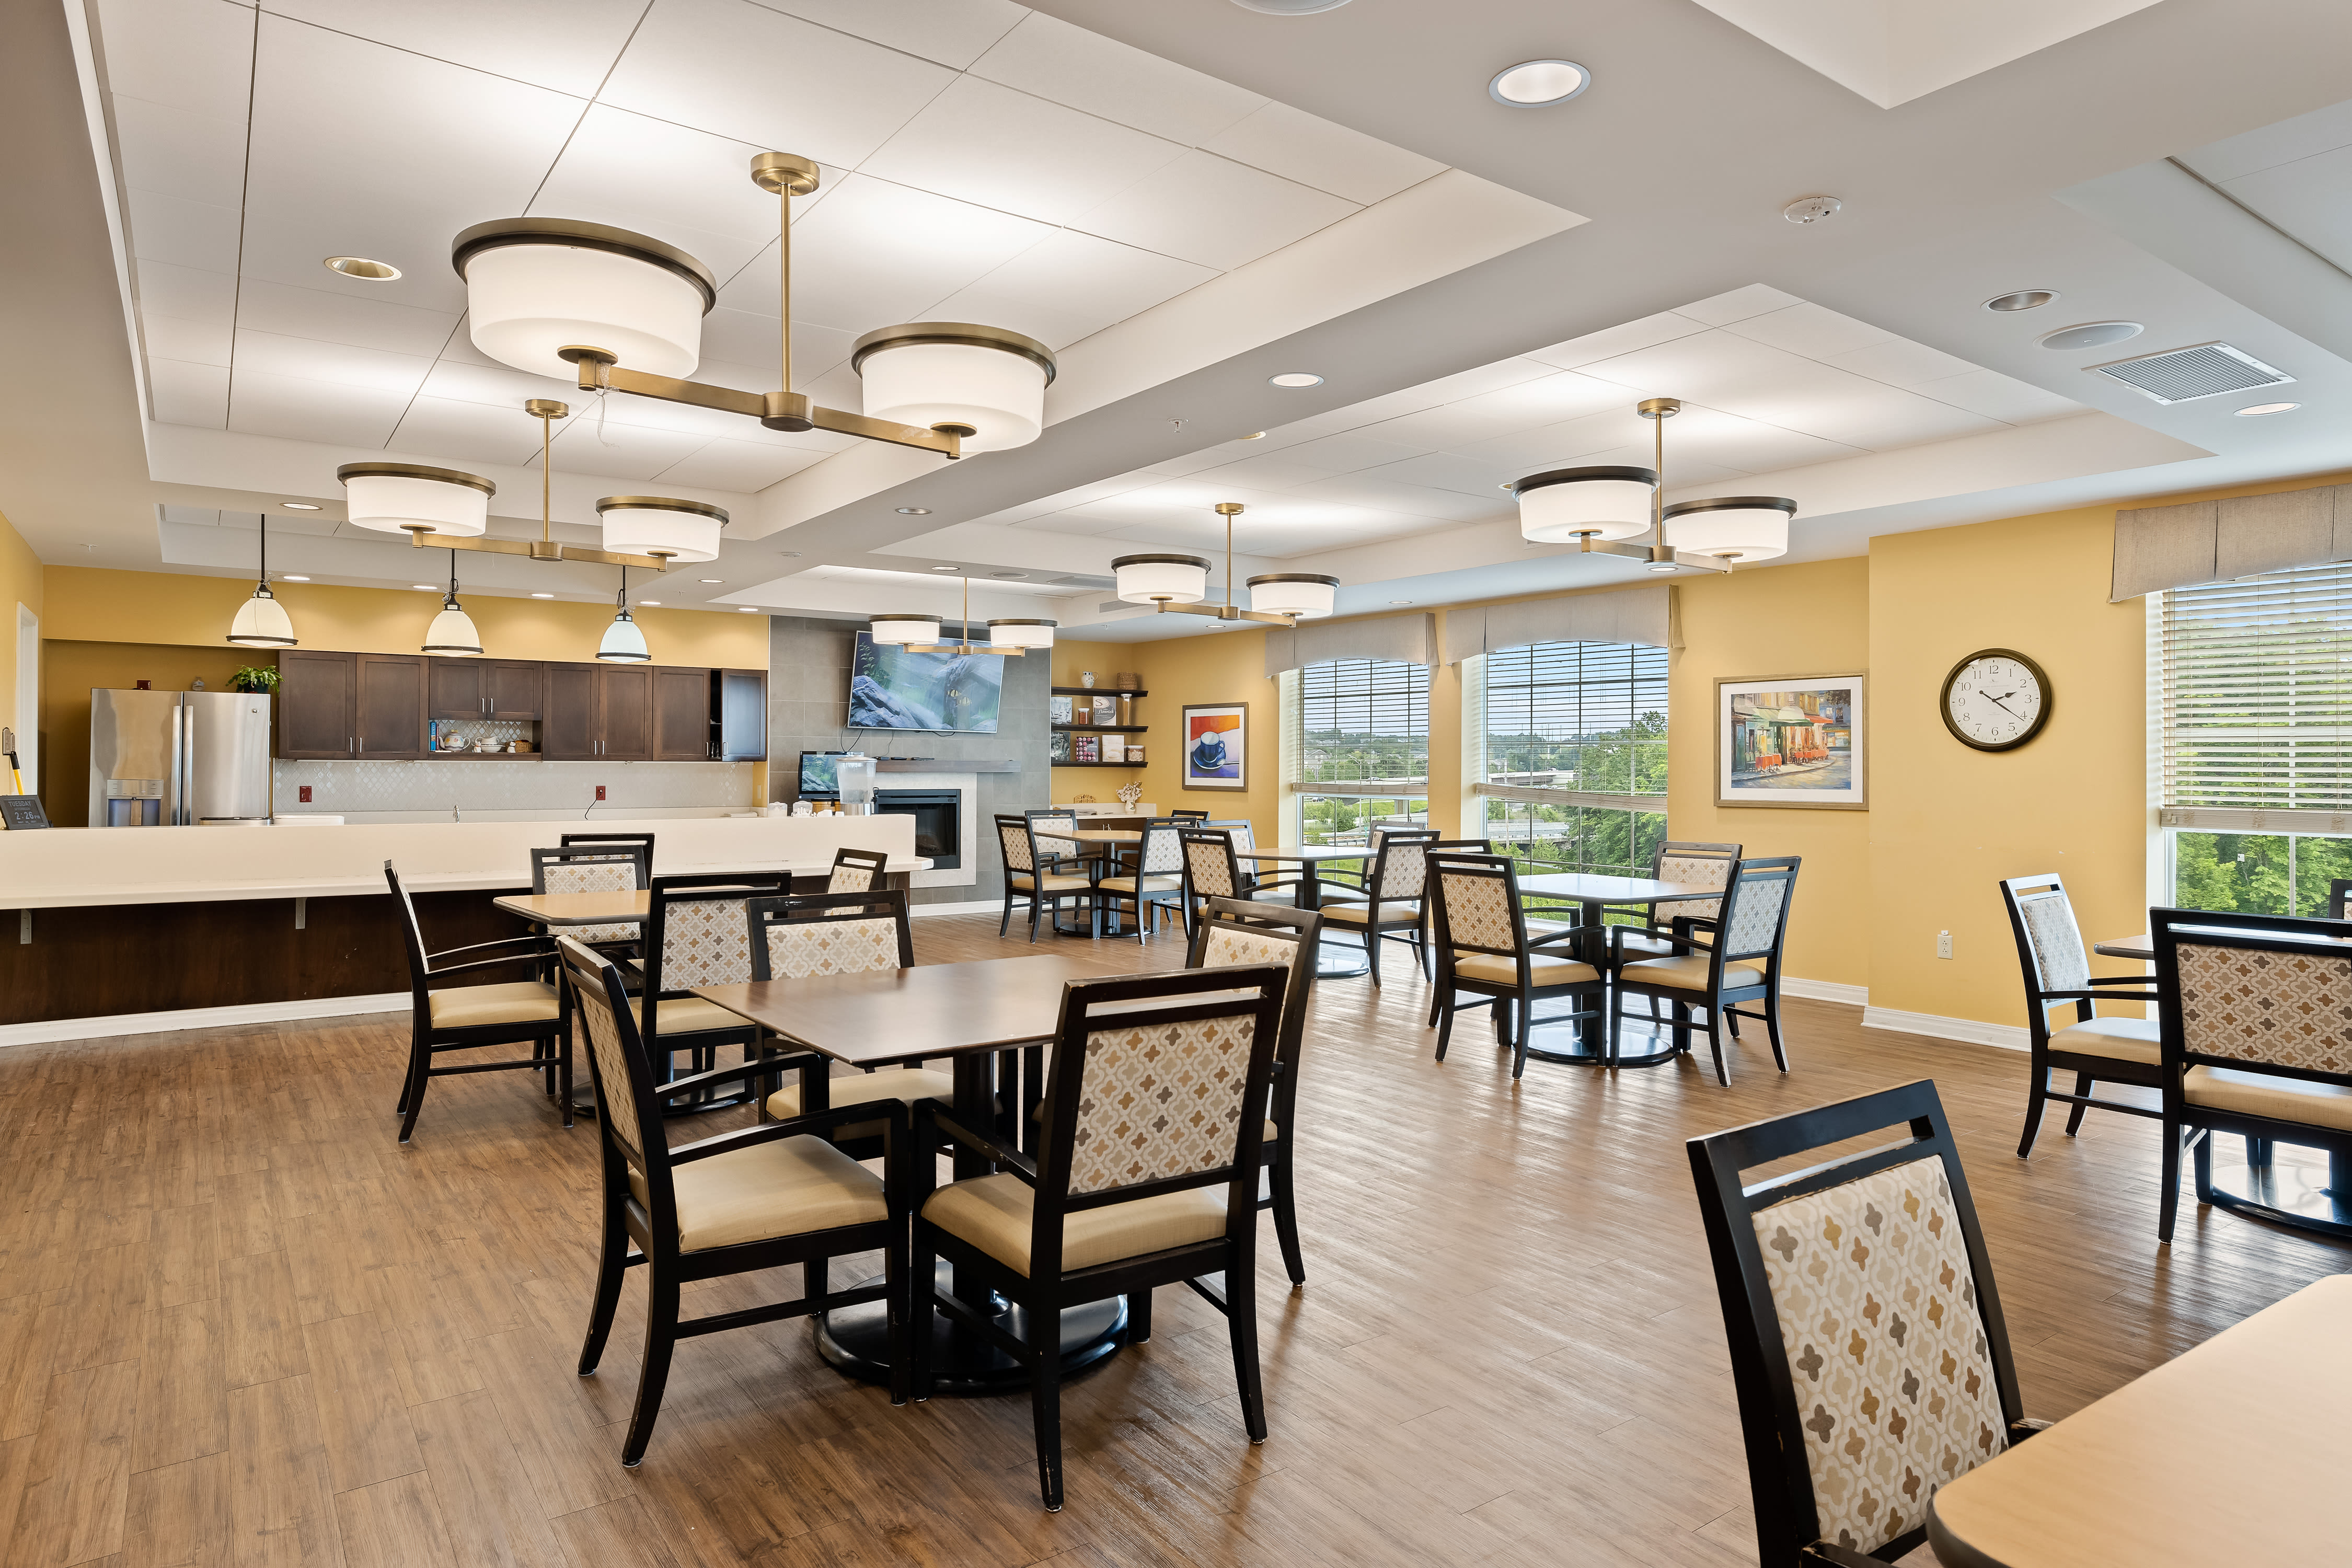 A memory care suite at Anthology of Overland Park in Overland Park, Kansas